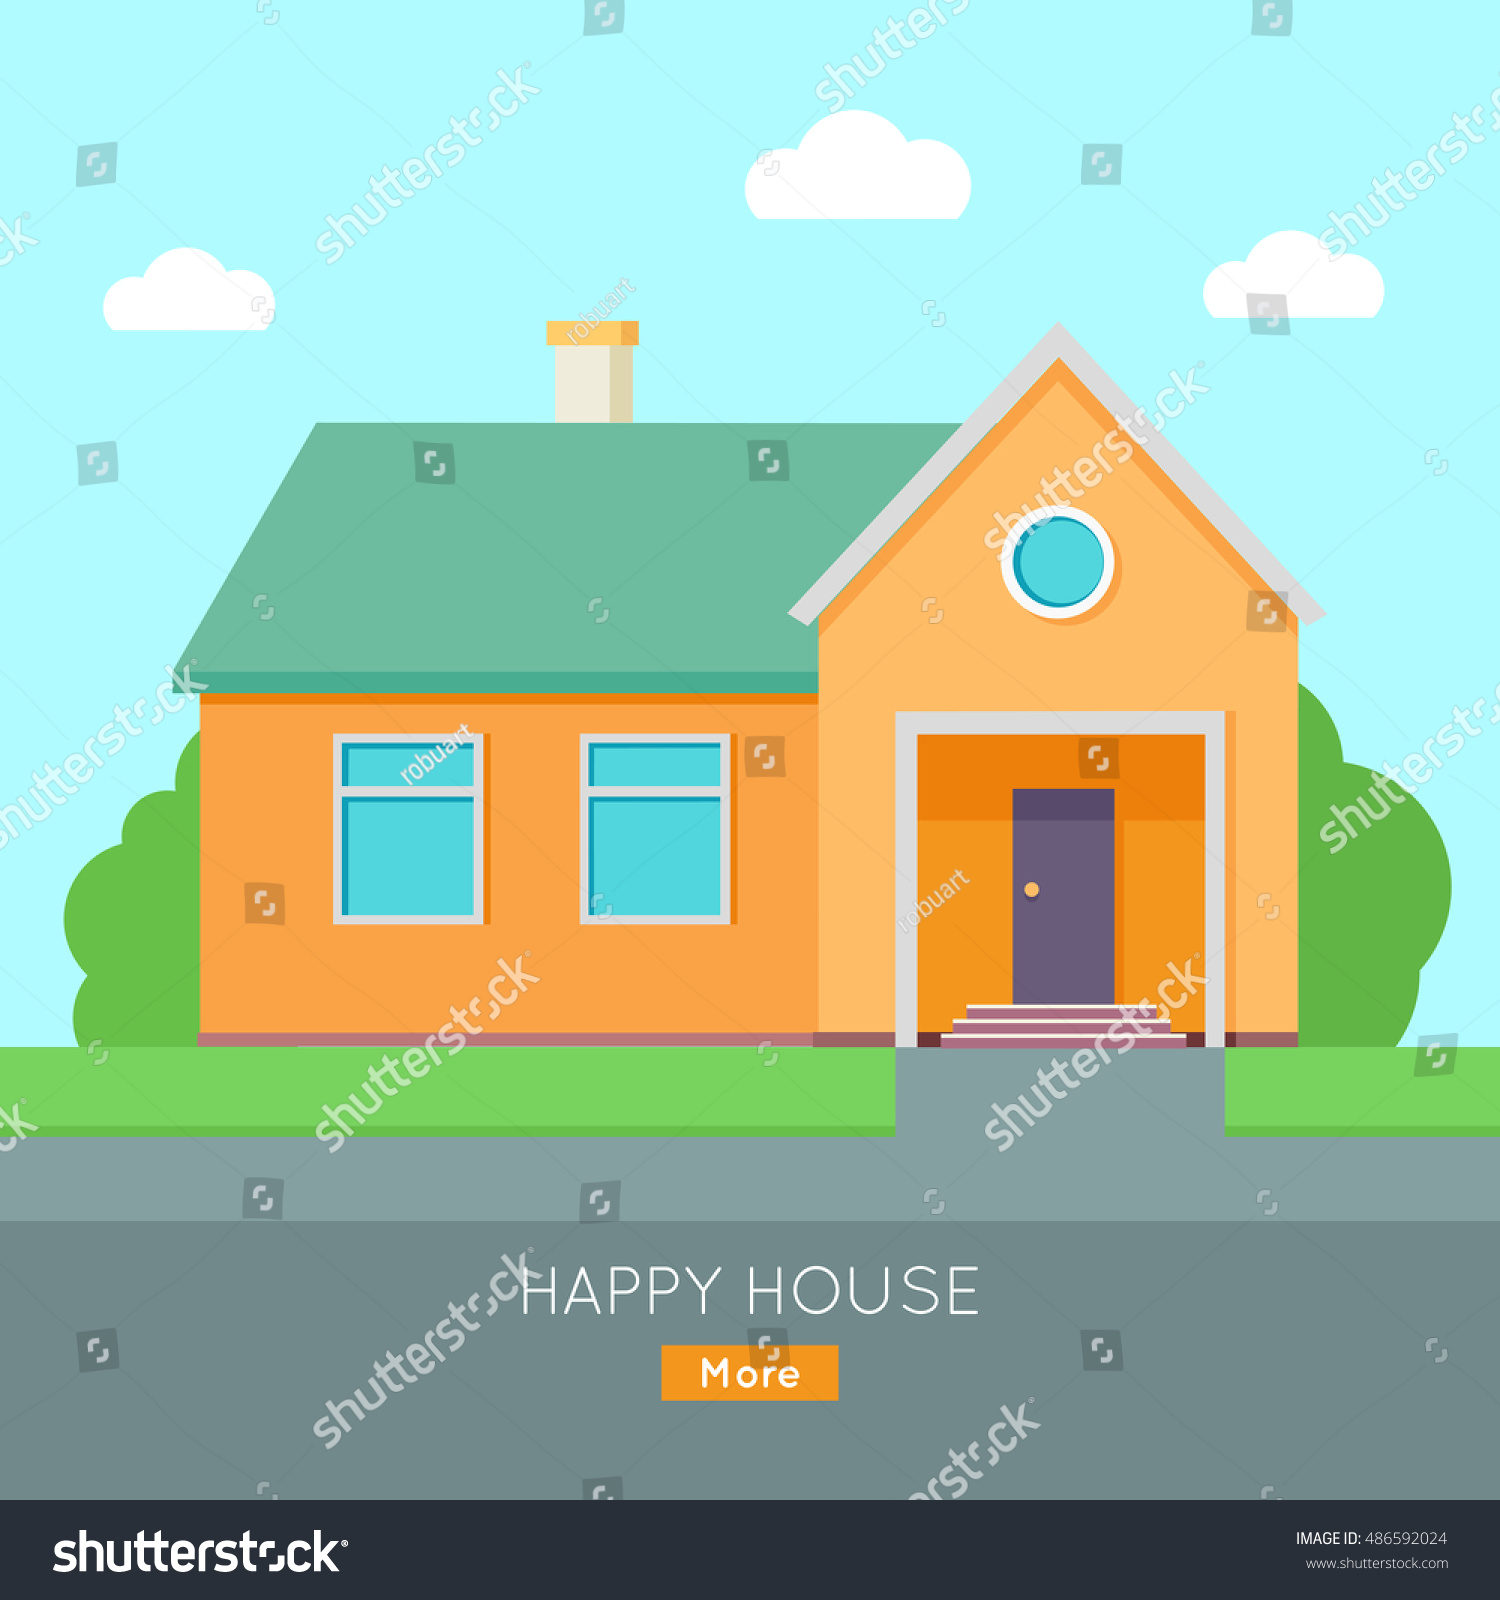 Happy house banner poster template exterior stock vector for Exterior design templates